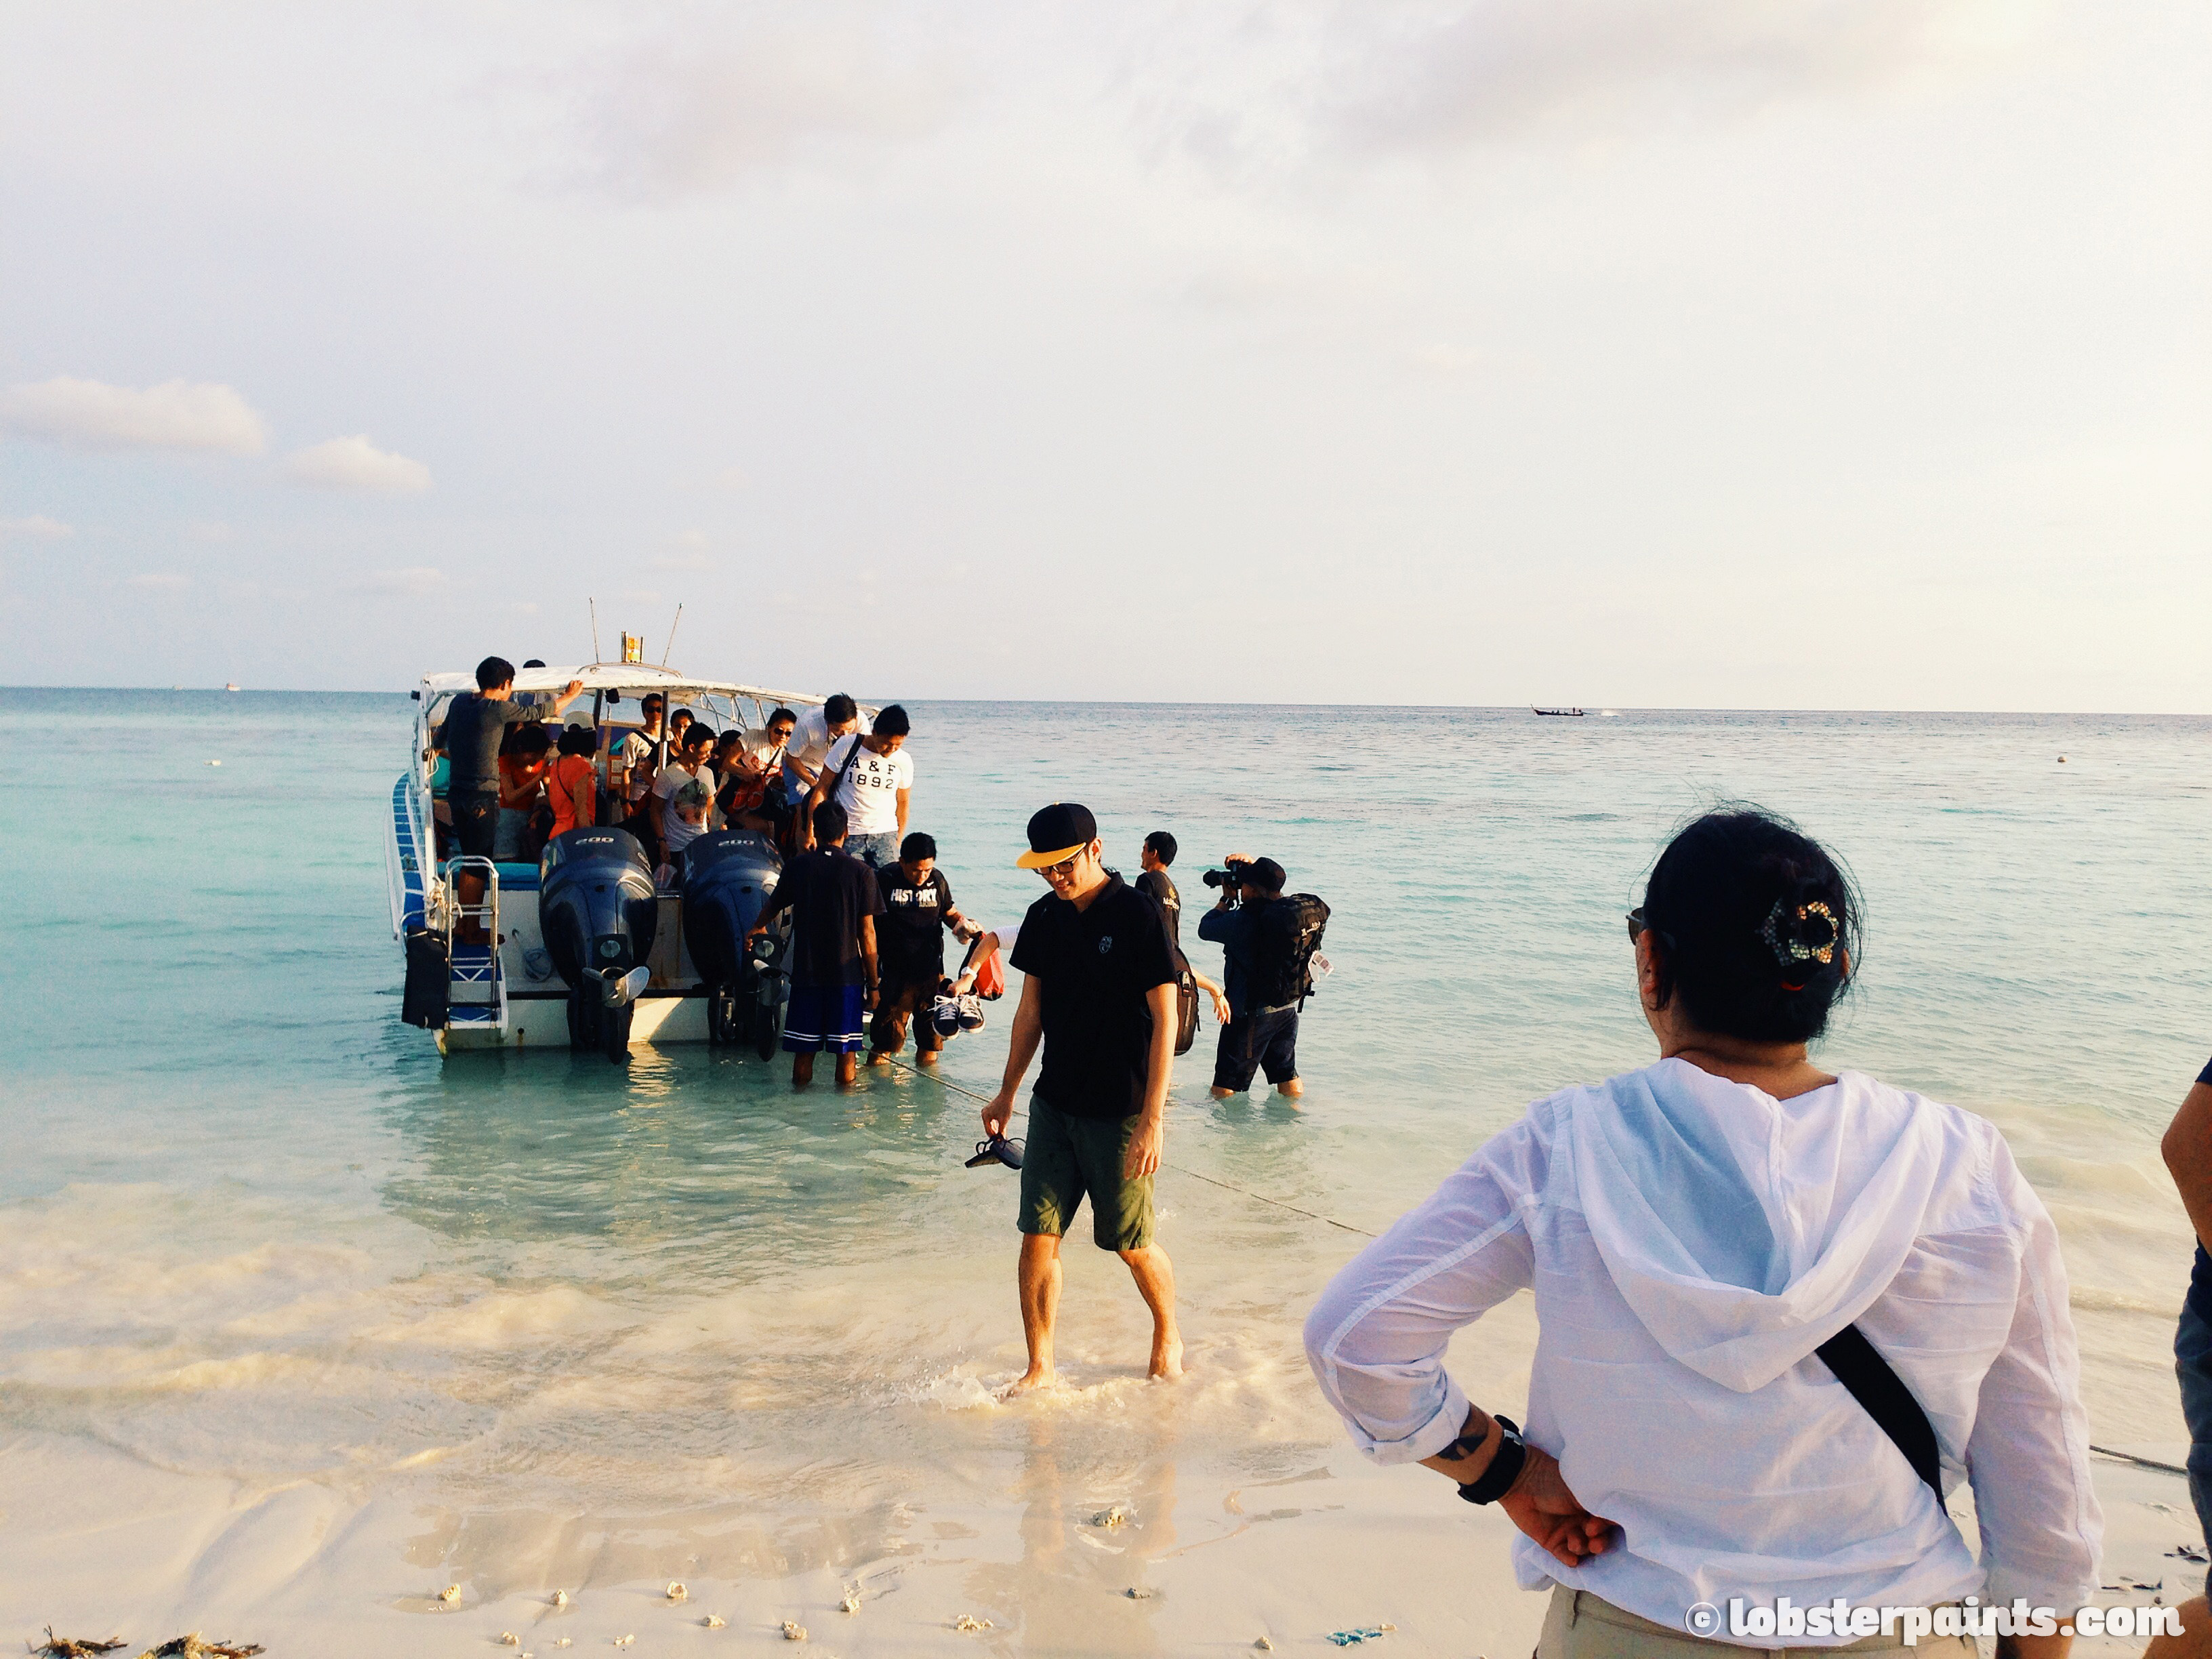 Arriving at Pattaya Beach | Koh Lipe, Thailand